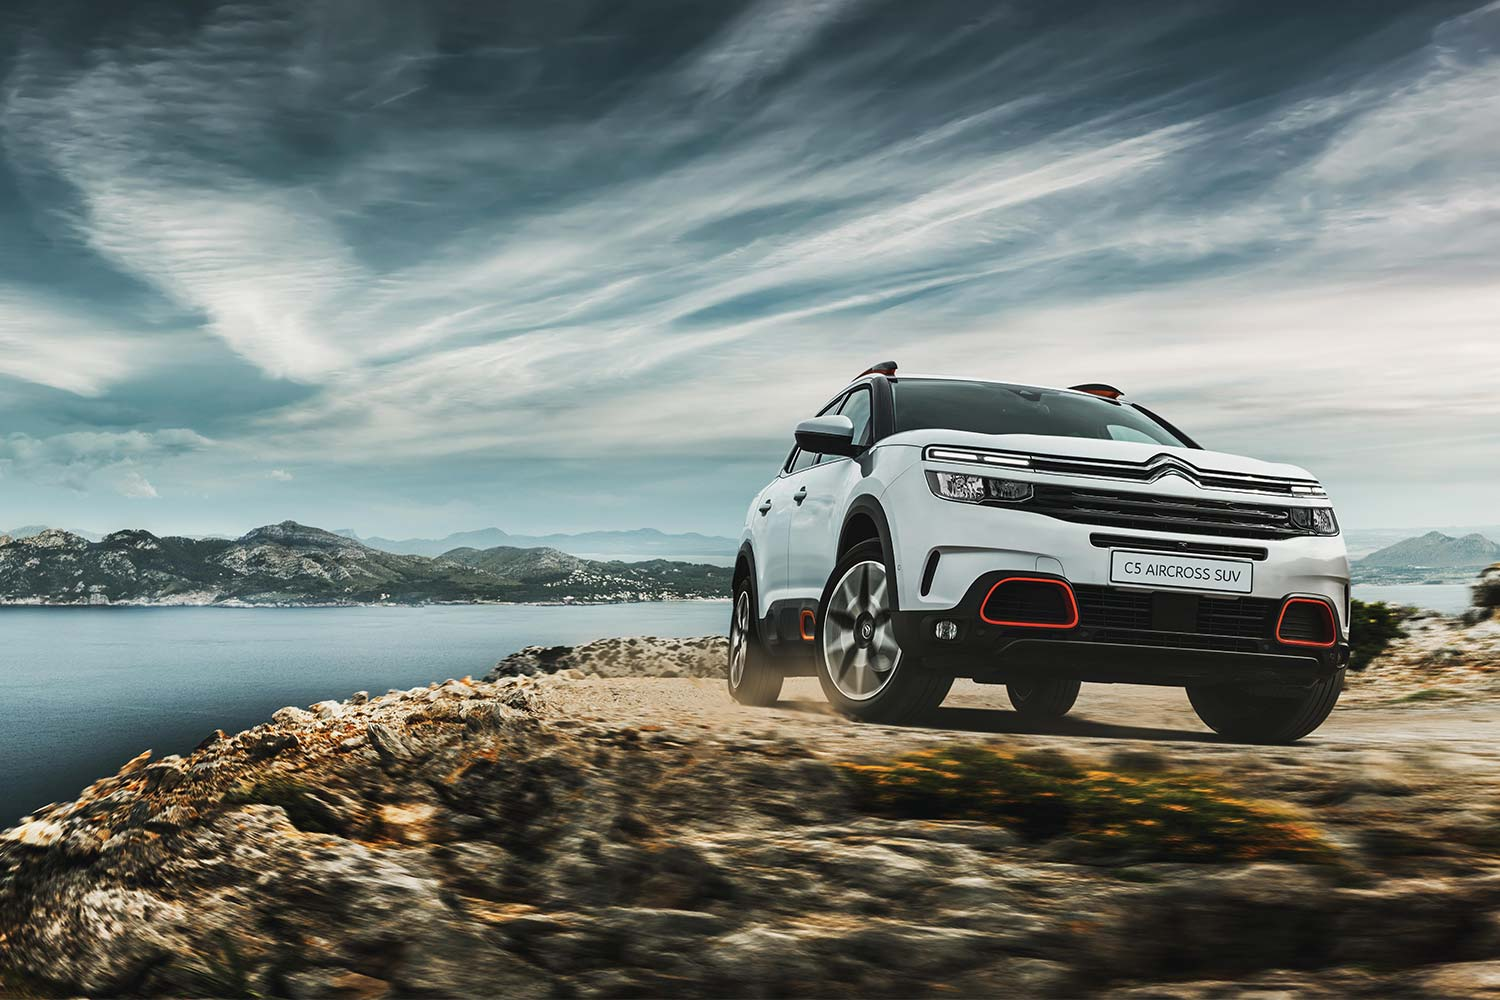 C5 Aircross Order Incentive